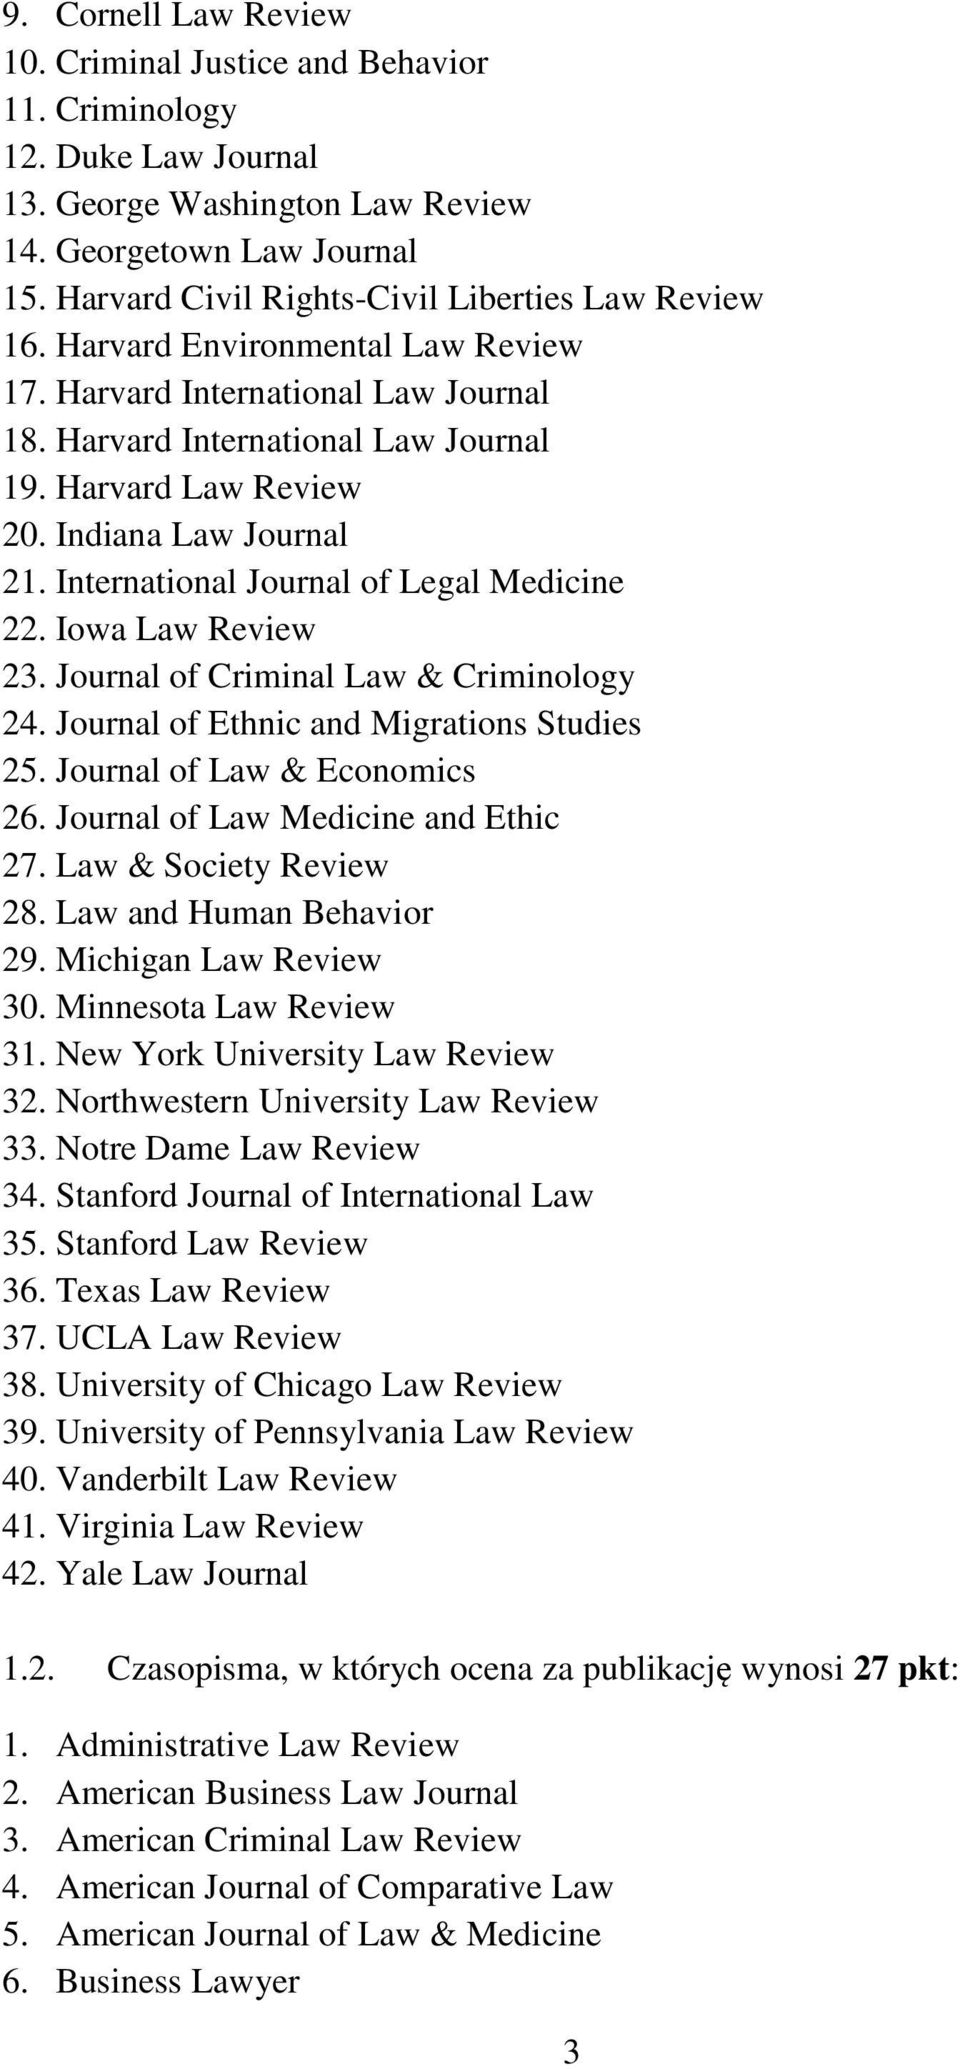 Indiana Law Journal 21. International Journal of Legal Medicine 22. Iowa Law Review 23. Journal of Criminal Law & Criminology 24. Journal of Ethnic and Migrations Studies 25.